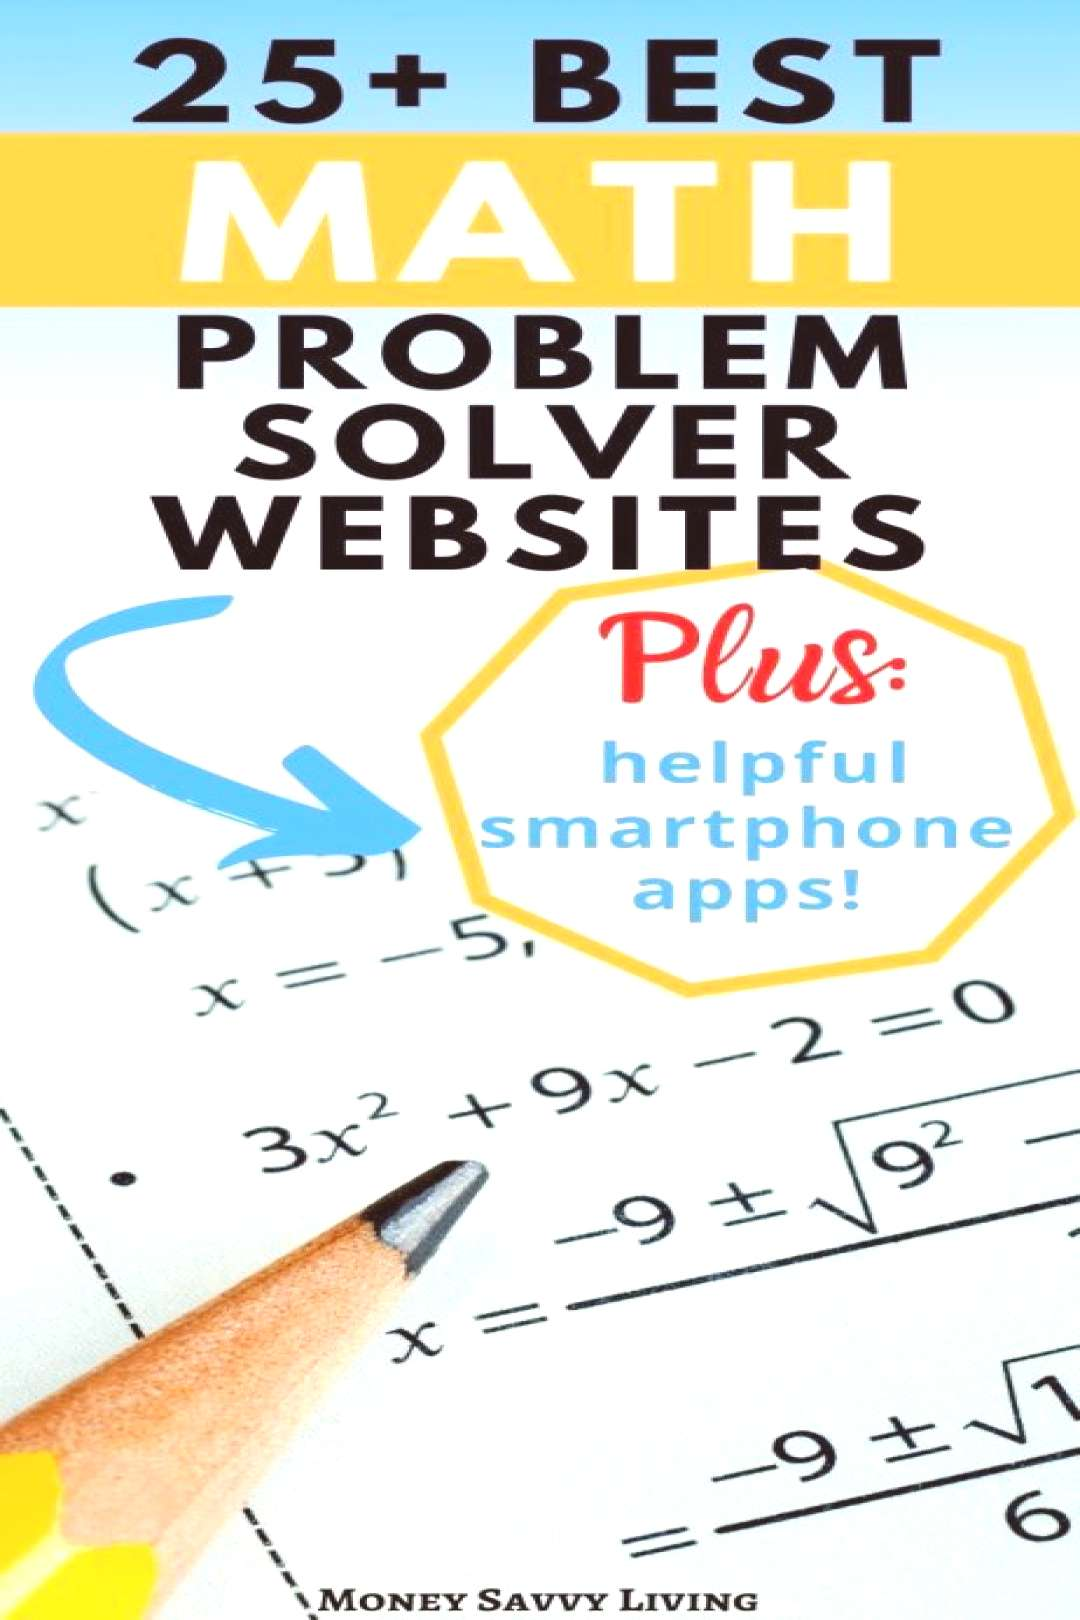 Best websites and smartphone apps to help solve math problems